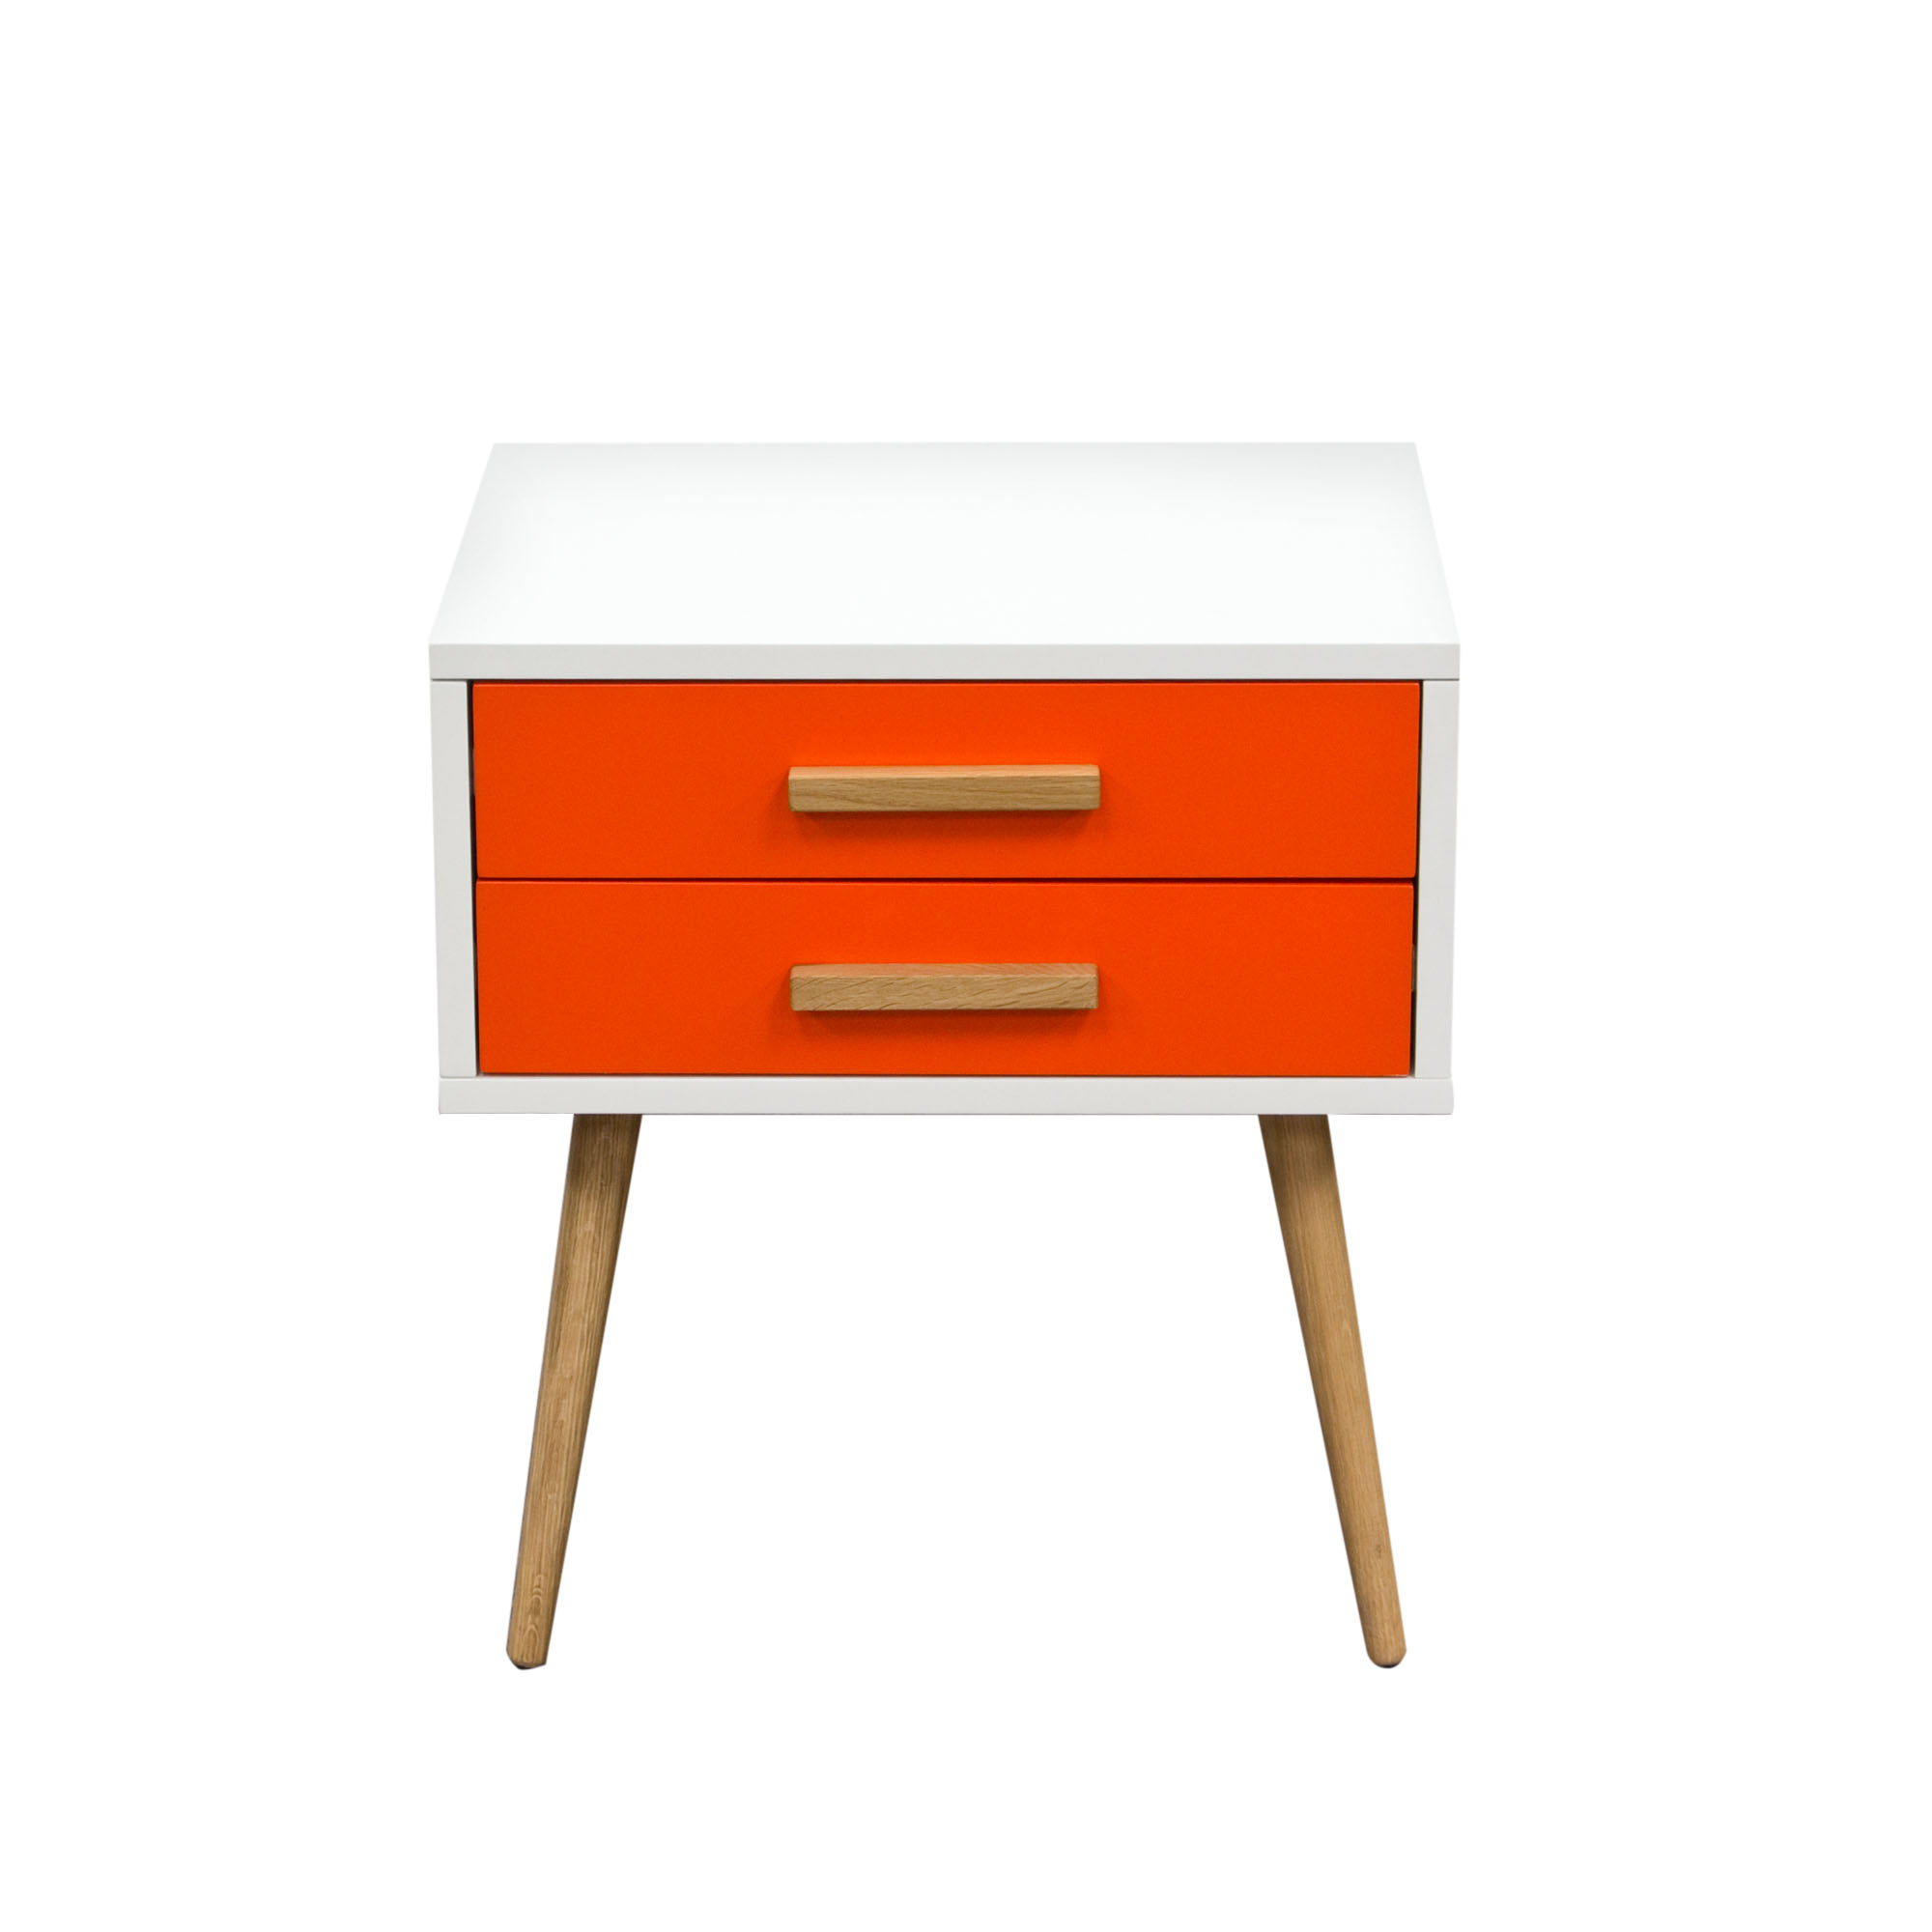 tangent drawer accent table white top orange drawers oak tangentetwhor with large marble slim drop leaf west elm decor living room chest green furniture dark brown end tables